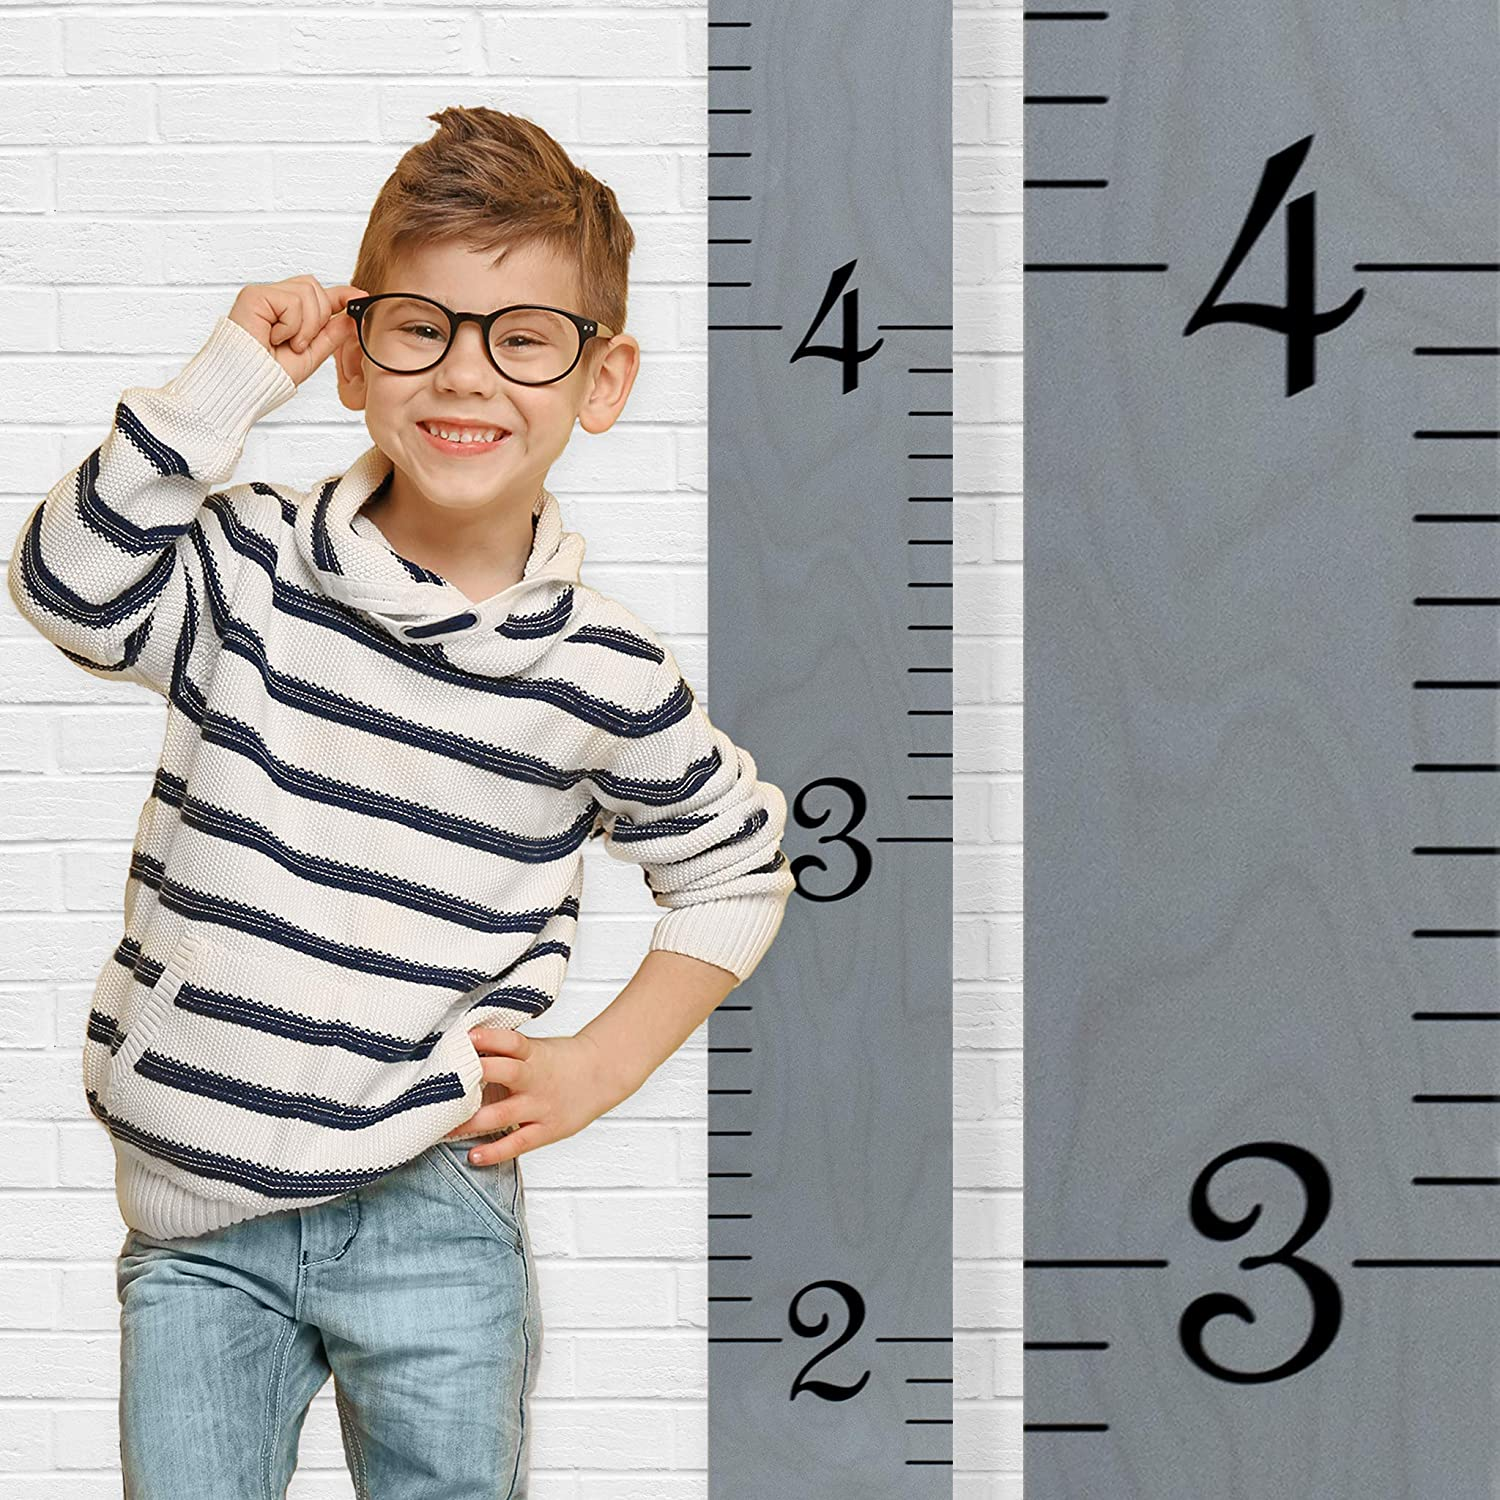 Growth Chart Art | Wooden Growth Chart Ruler Kids Height Chart for Boys + Girls | Measuring Kids Height Wall Décor | Honey Maple Ruler with Black Numerals RULMH